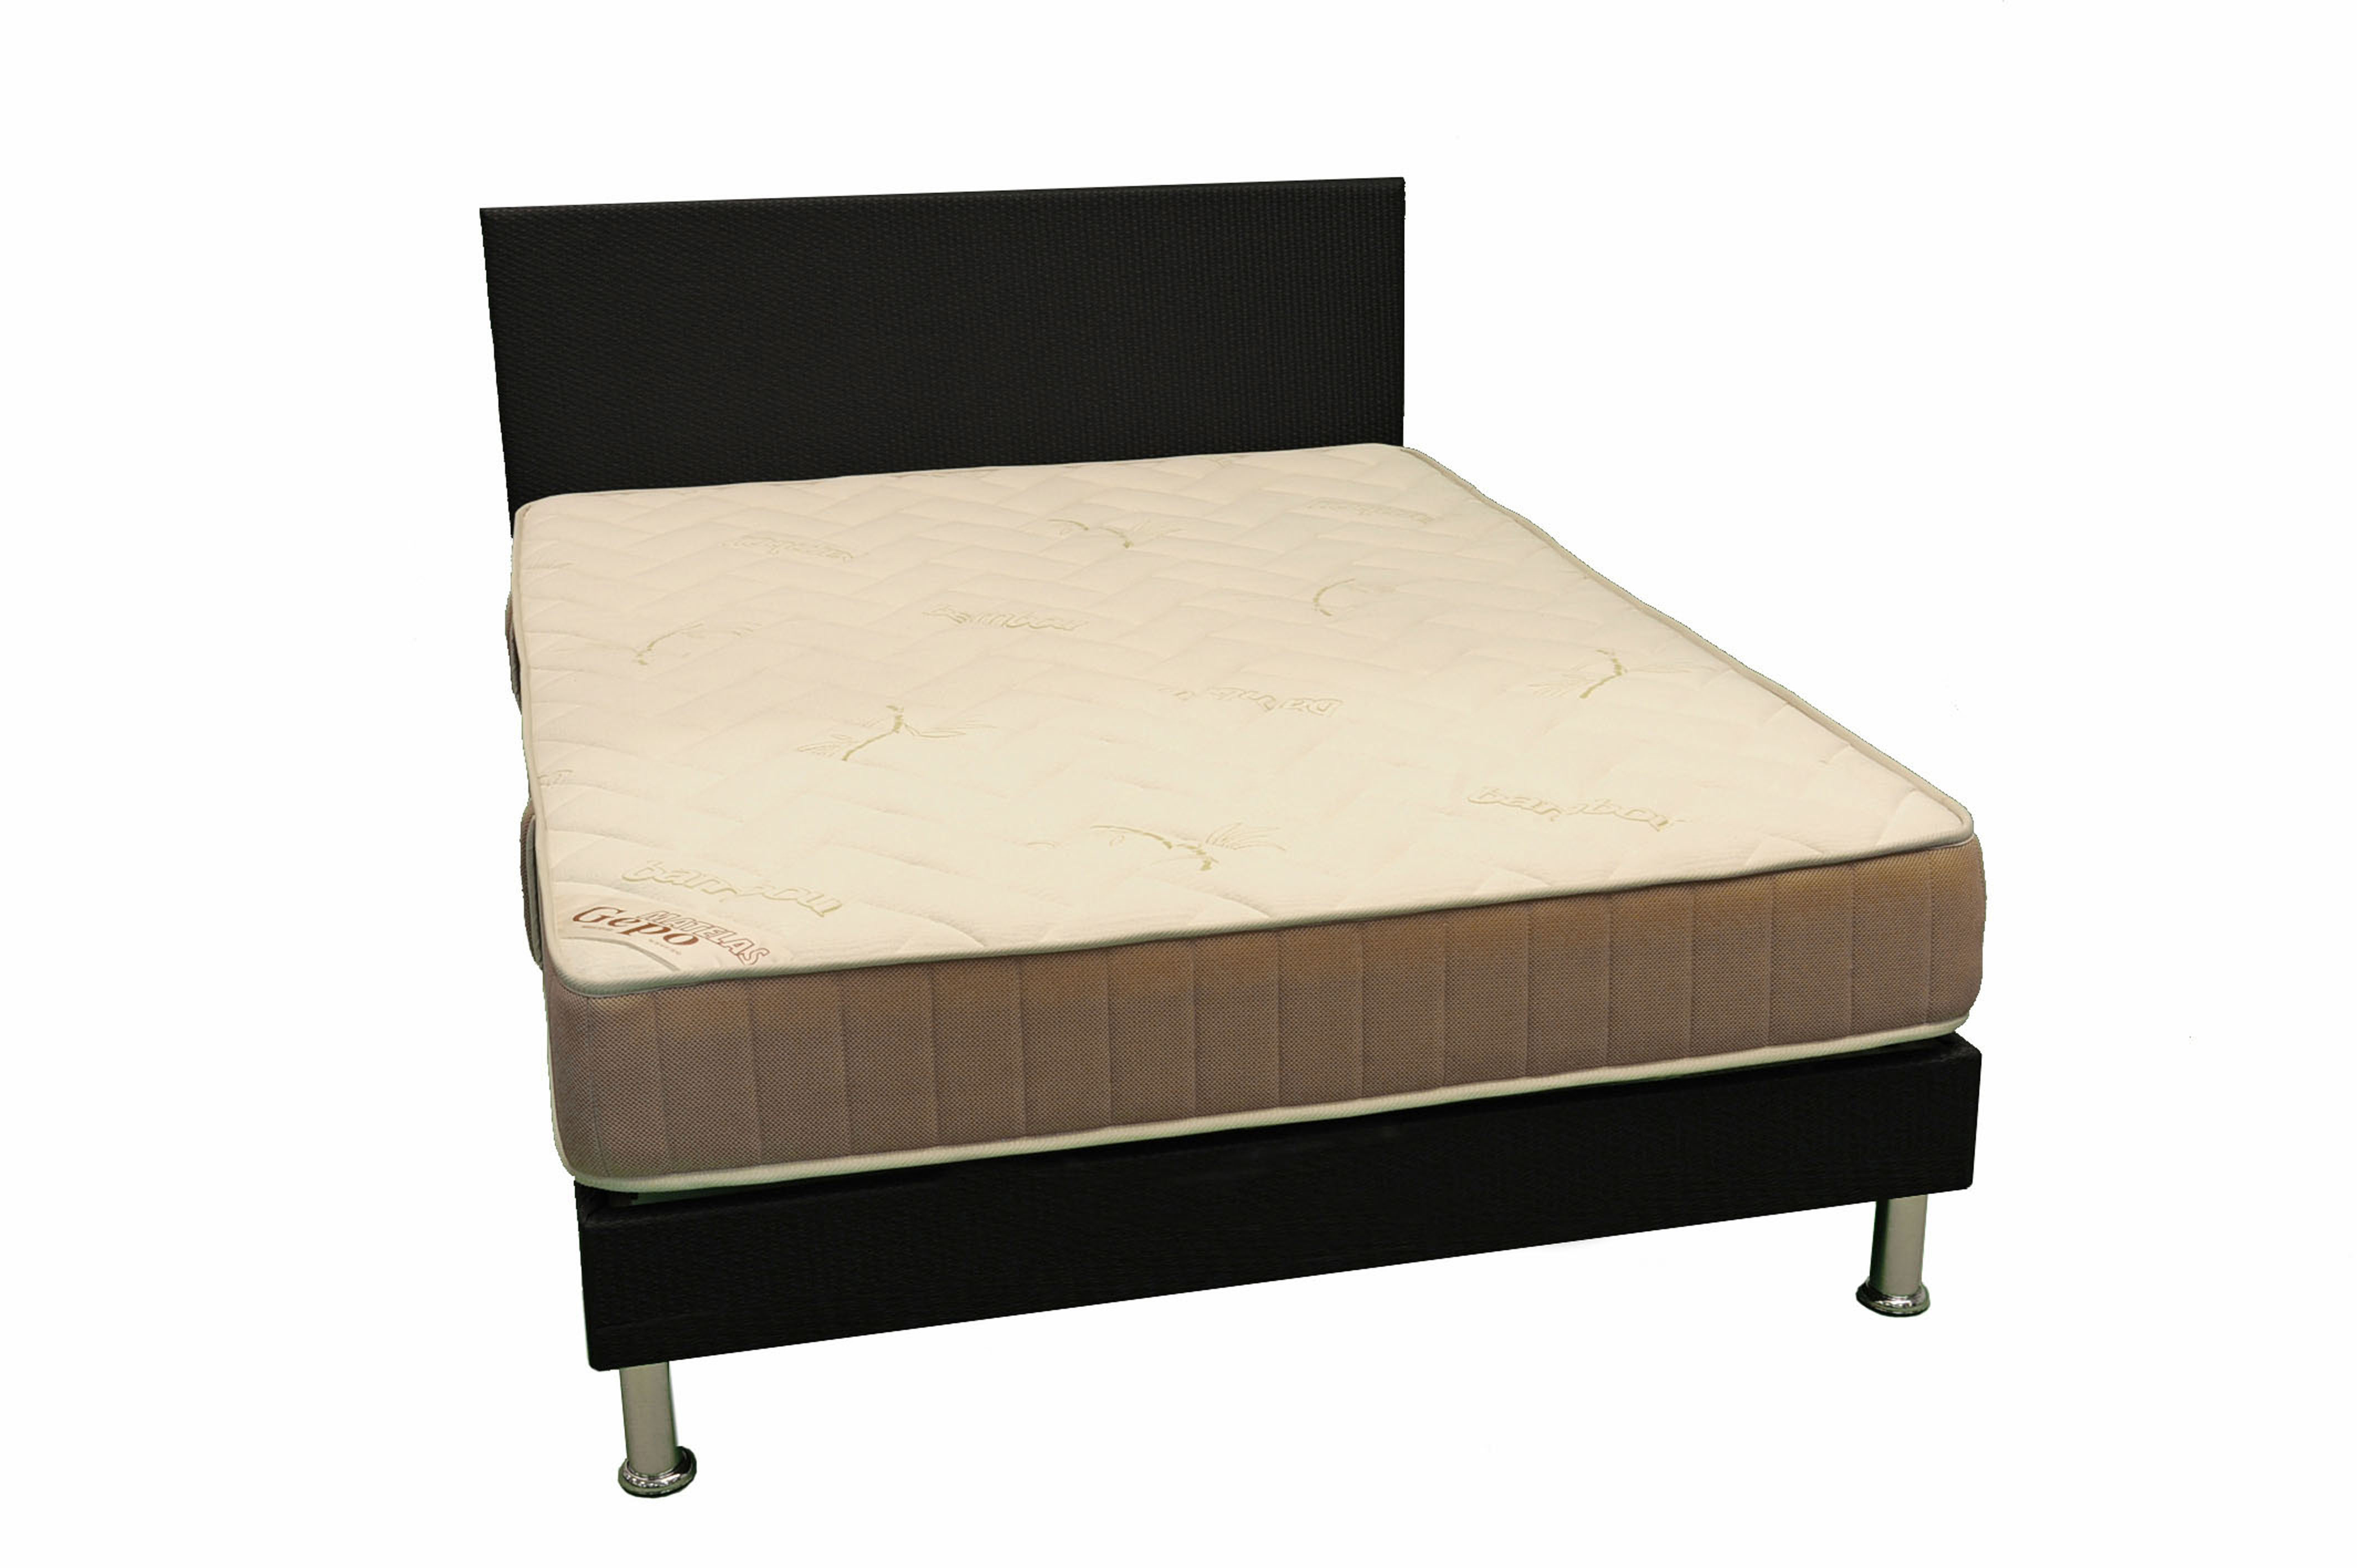 t te de lit extra plate matelas gepo. Black Bedroom Furniture Sets. Home Design Ideas